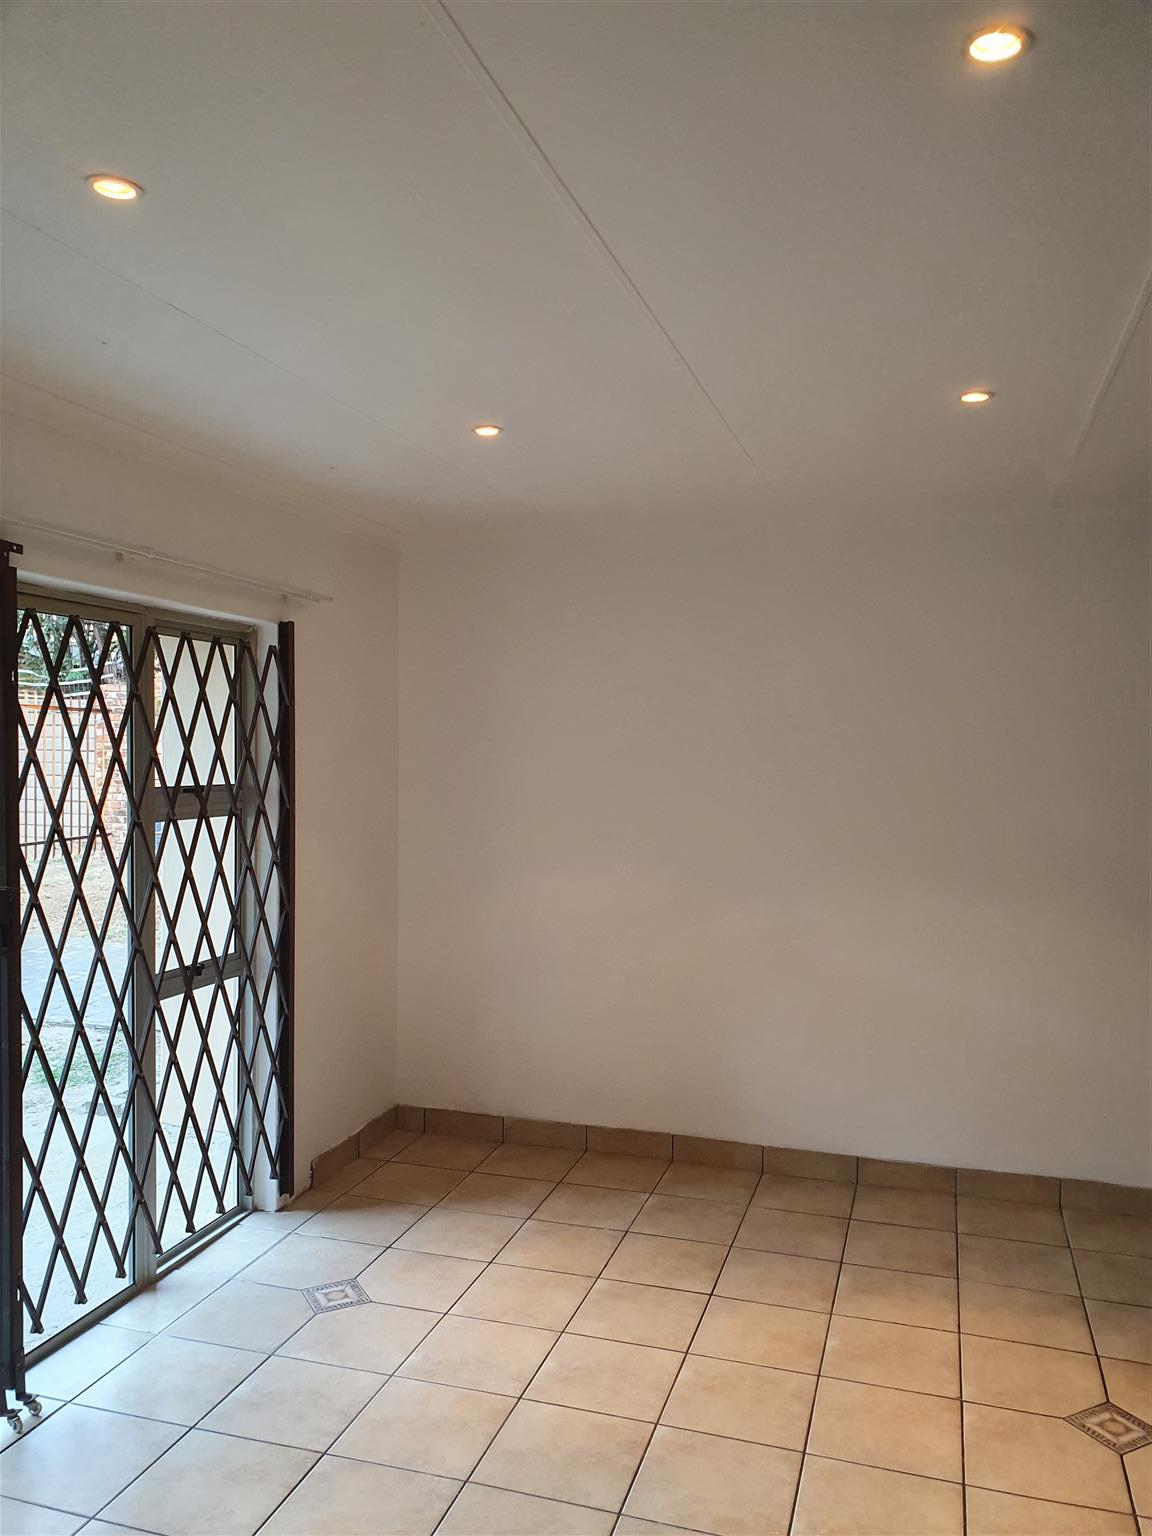 Newly renovated 2 Bedroom Cottage to rent in Buccleuch, Sandton